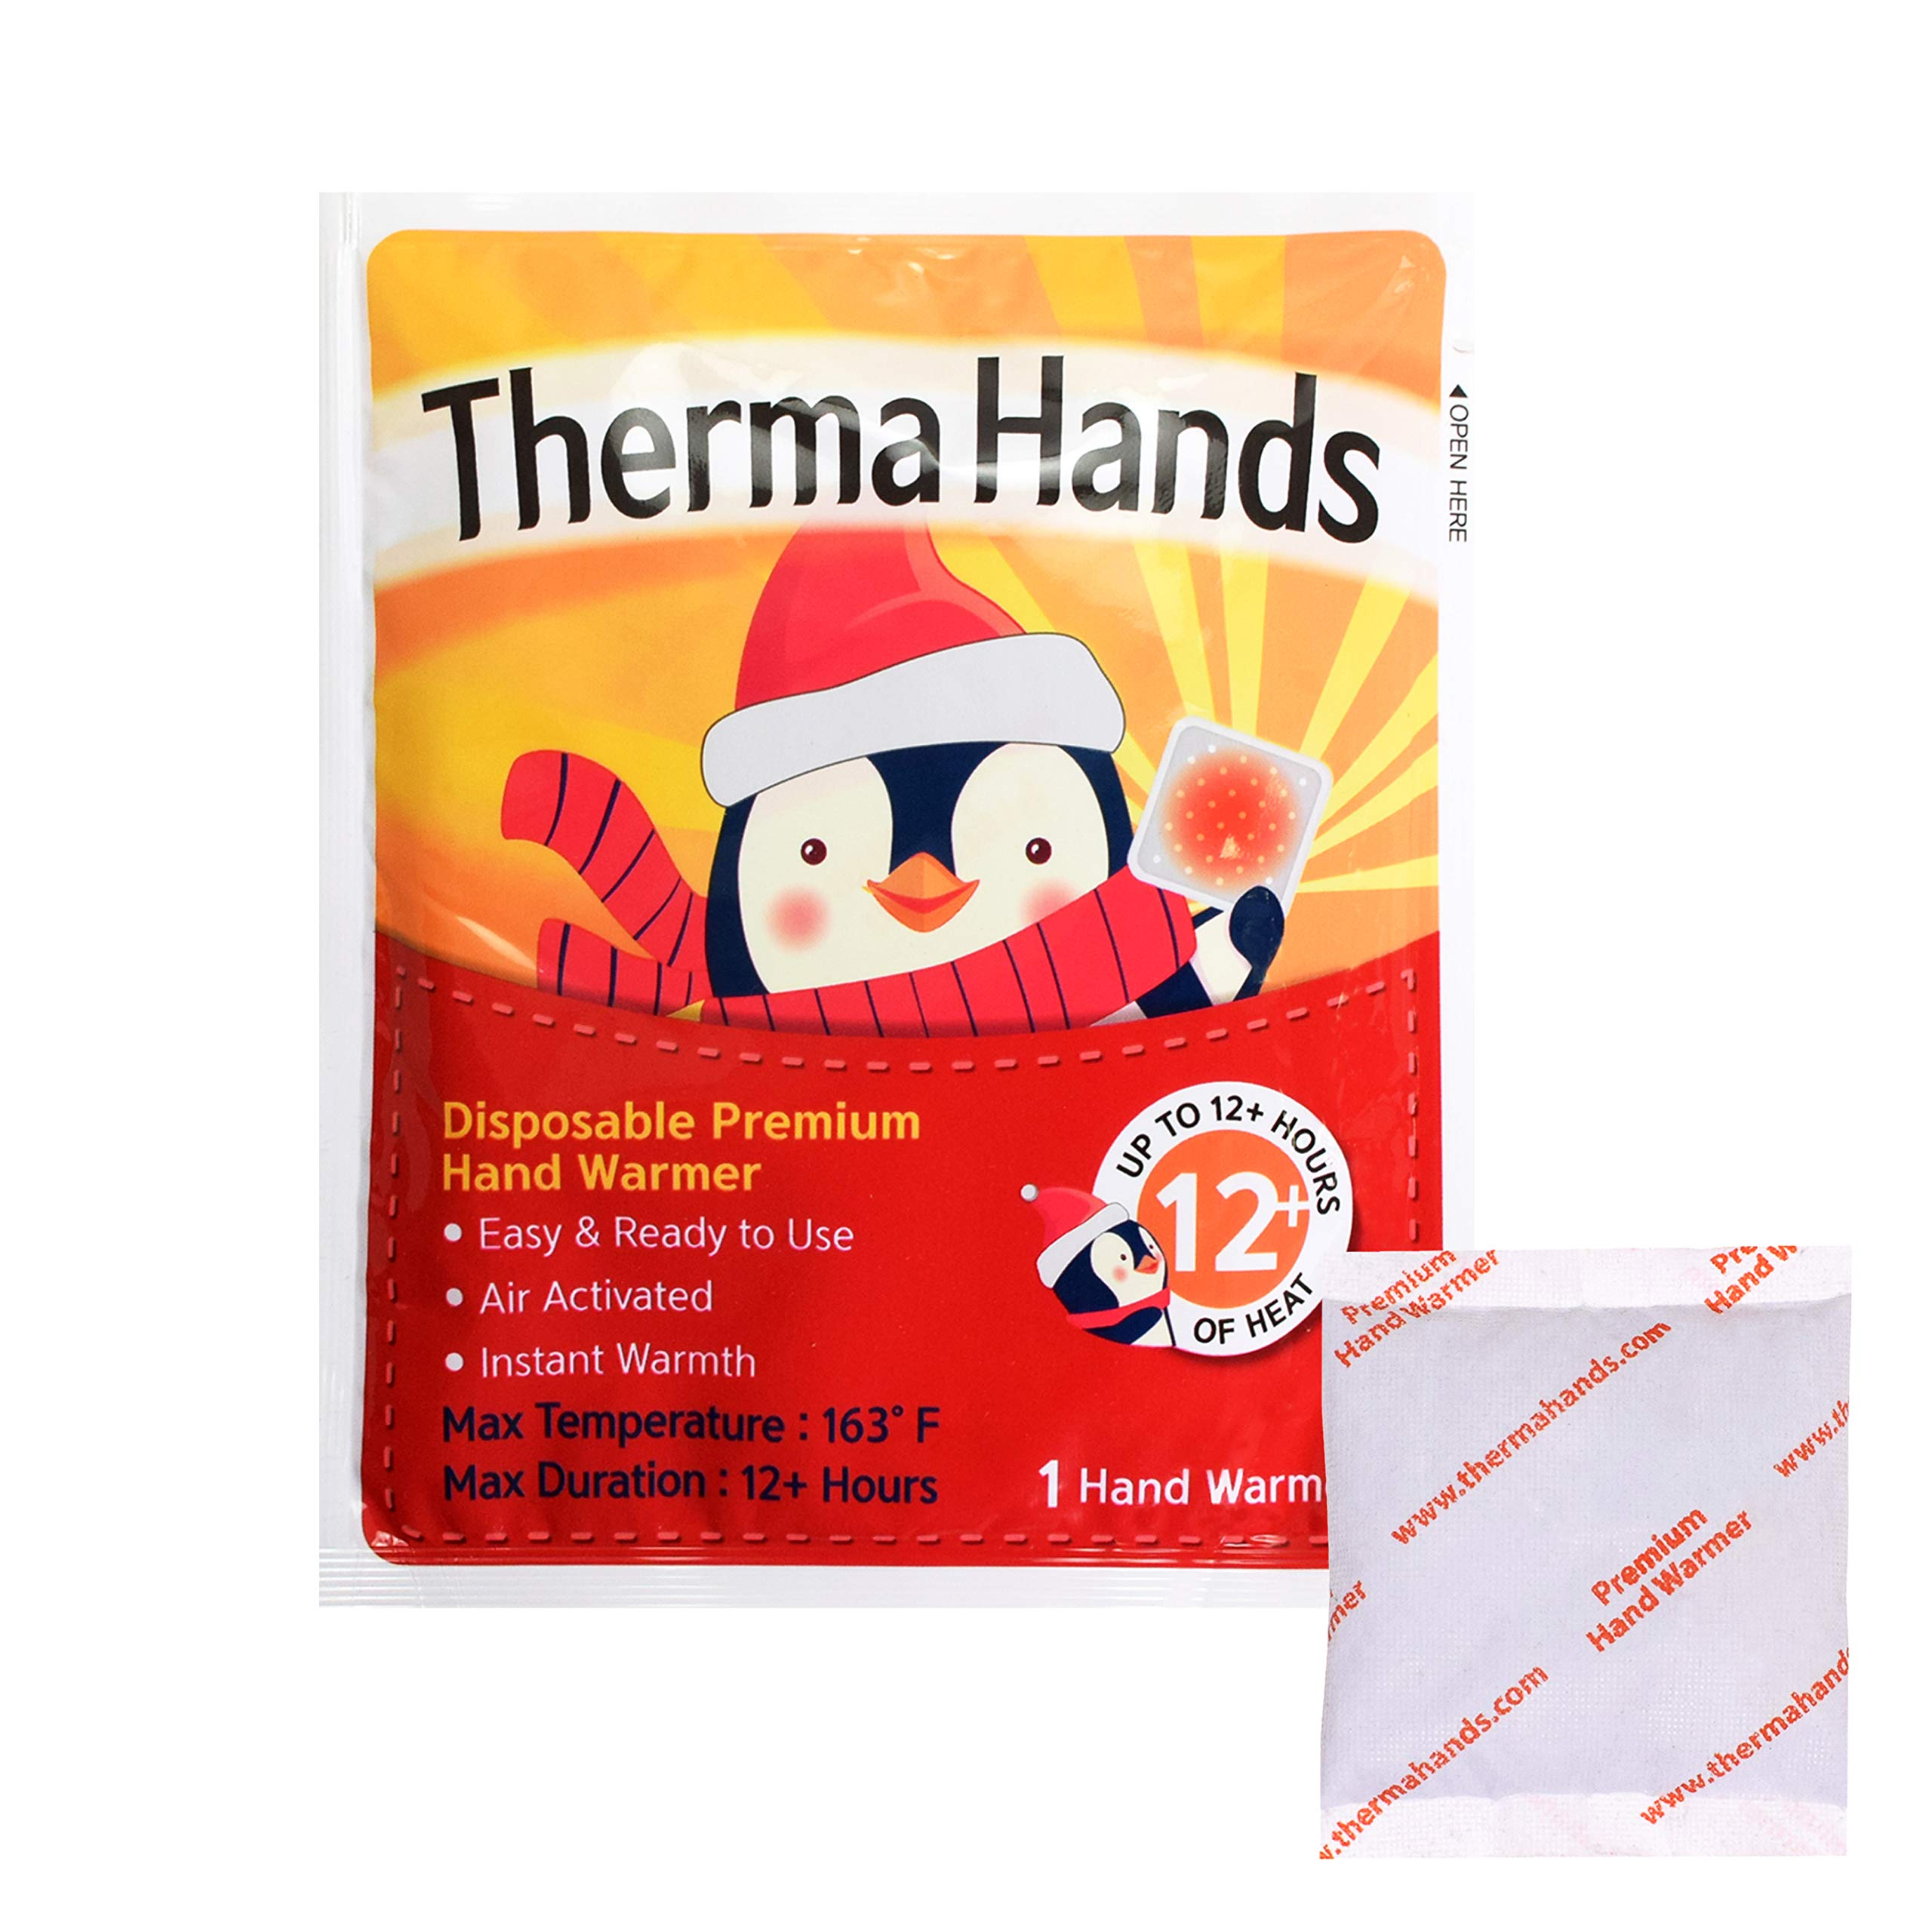 ThermaHands Hand Warmers (180 Packs) - Premium Quality (Size: 3.5 inch x 4 inch, Duration: 12+ Hours, Max Temp: 163 F) Air-Activated, Convenient, Safe, Natural, Odorless, Long Lasting Warmers by ThermaHands